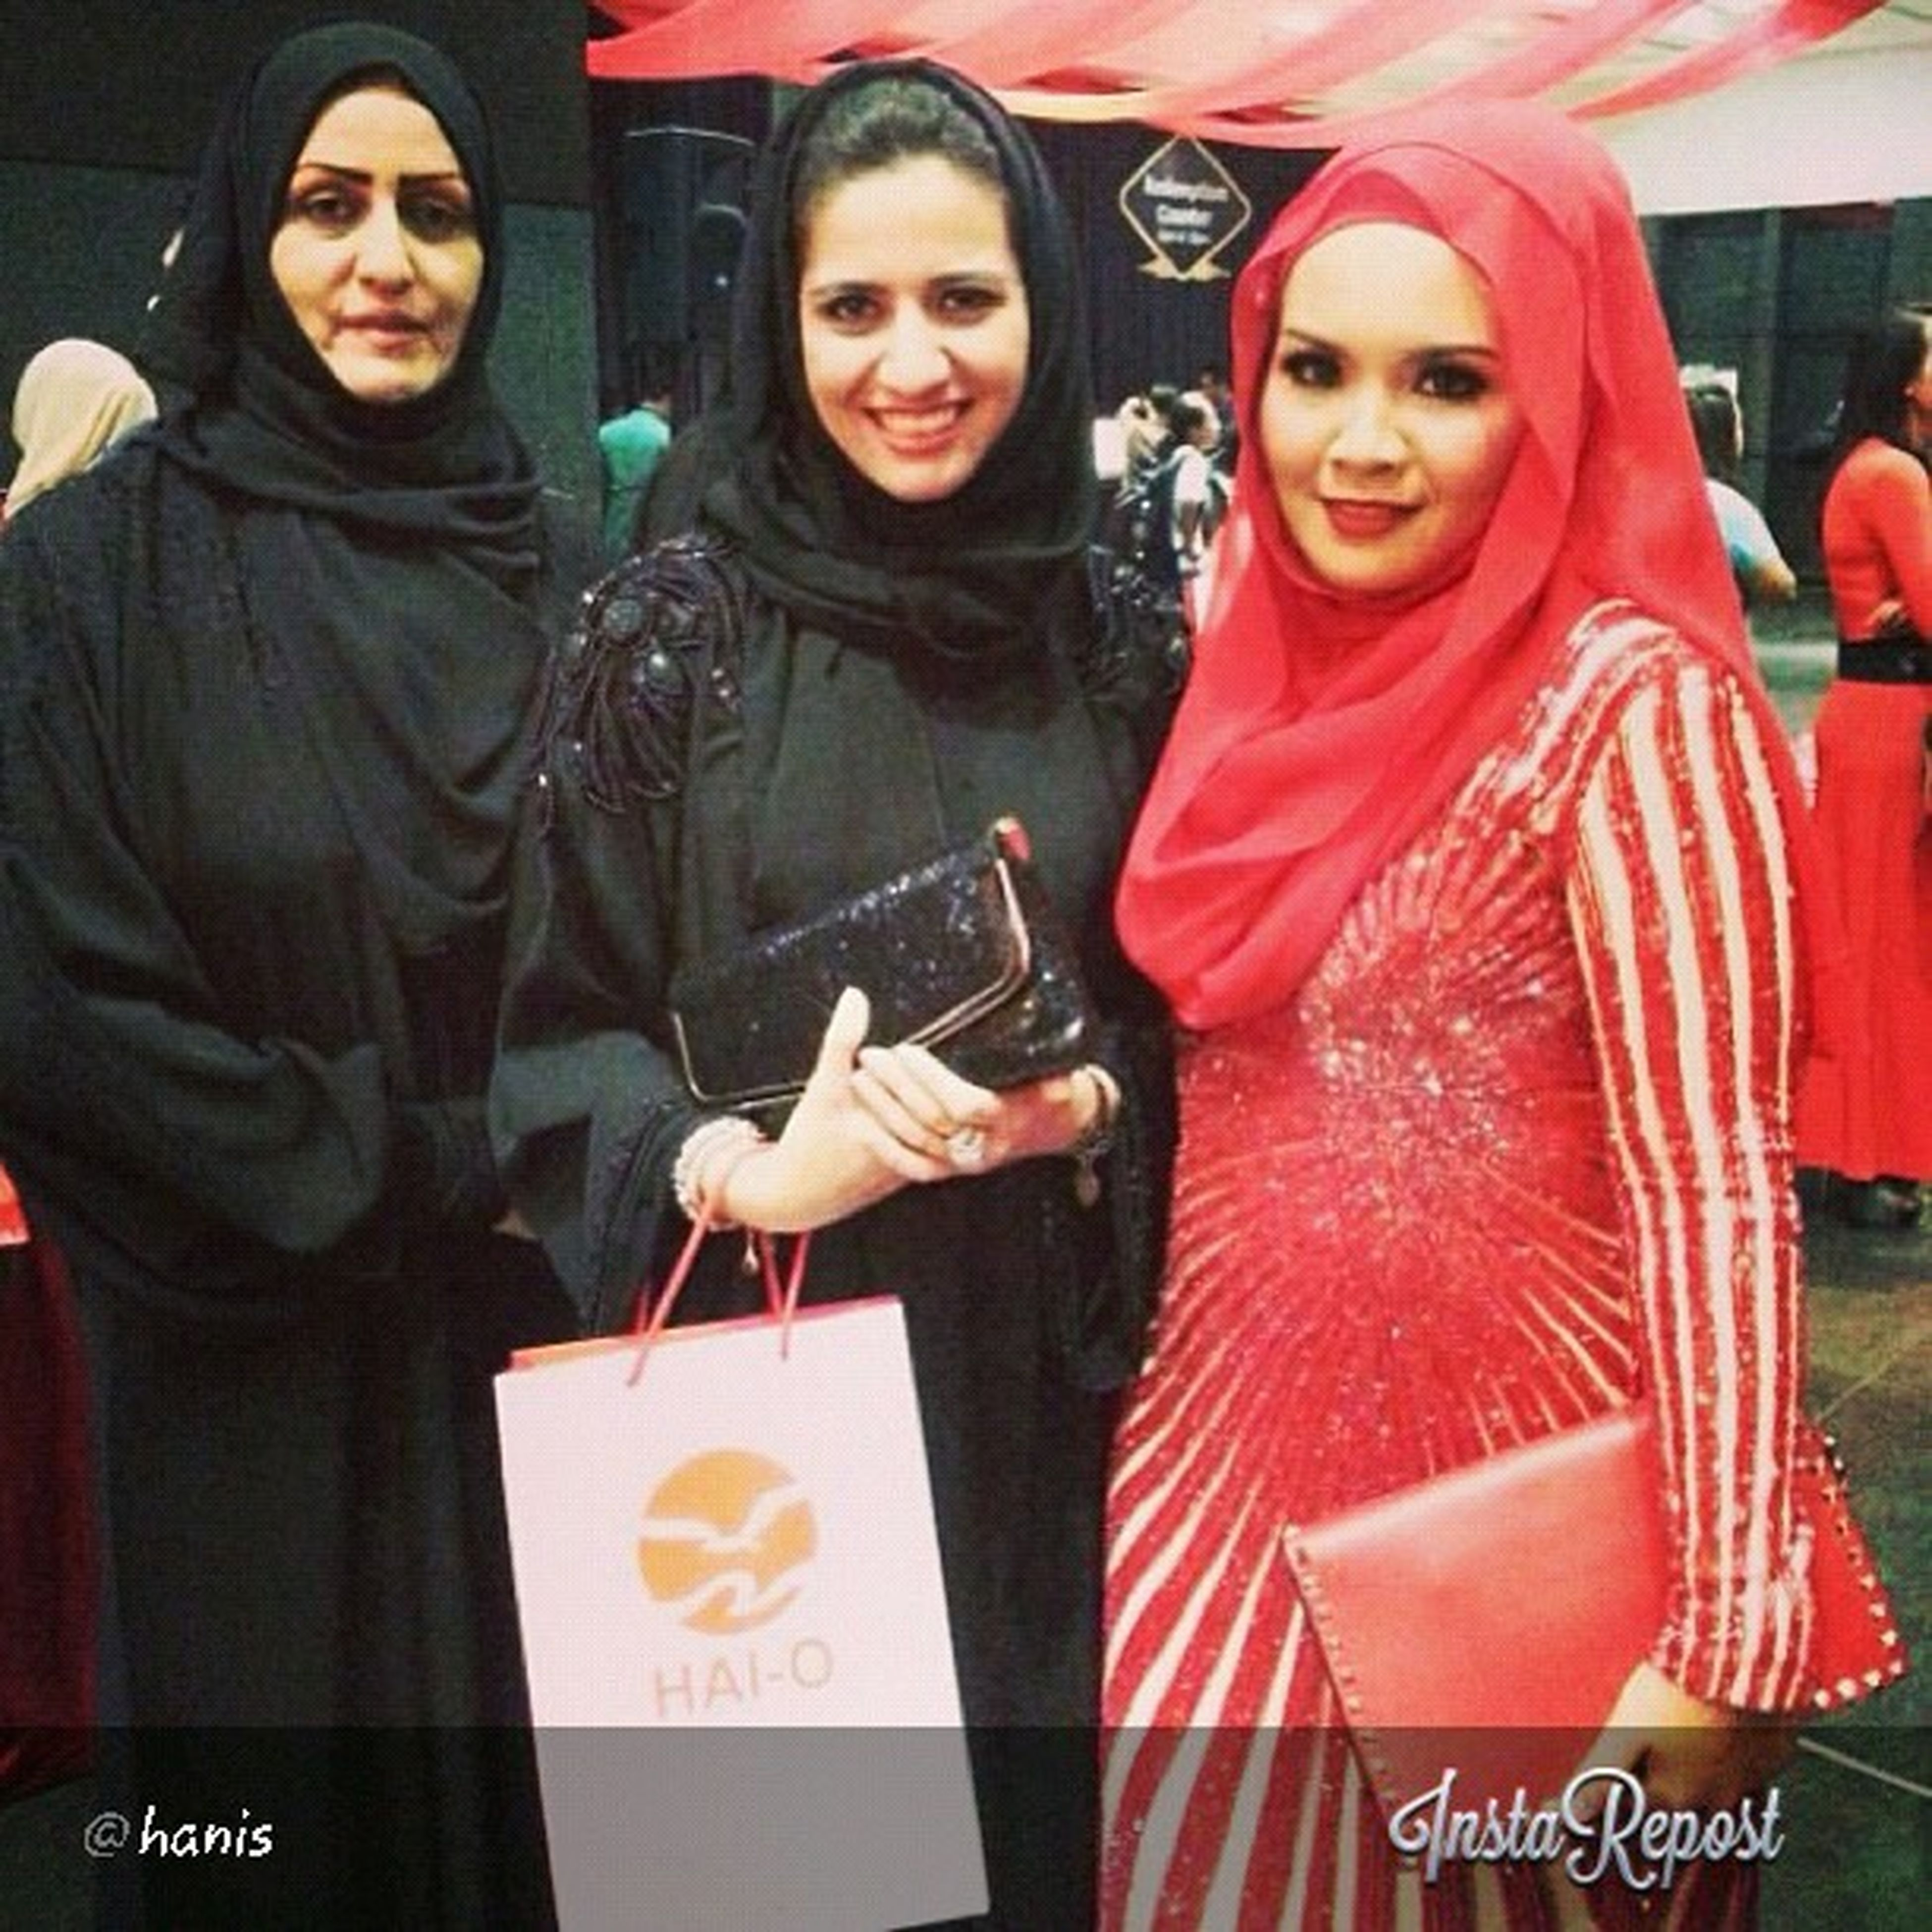 Hanis with partners from Qatar! Our business has spread to outsider. As an Pioneer in Social Media Marketing, there is no boundaries to introduce our business outside of Malaysia. And we make it through! Alhamdulillah, here it is! Pbqatar Glamprenuer Glam Hanishaizi world success gorgeous arabian linazahrah linazahrahdotcom